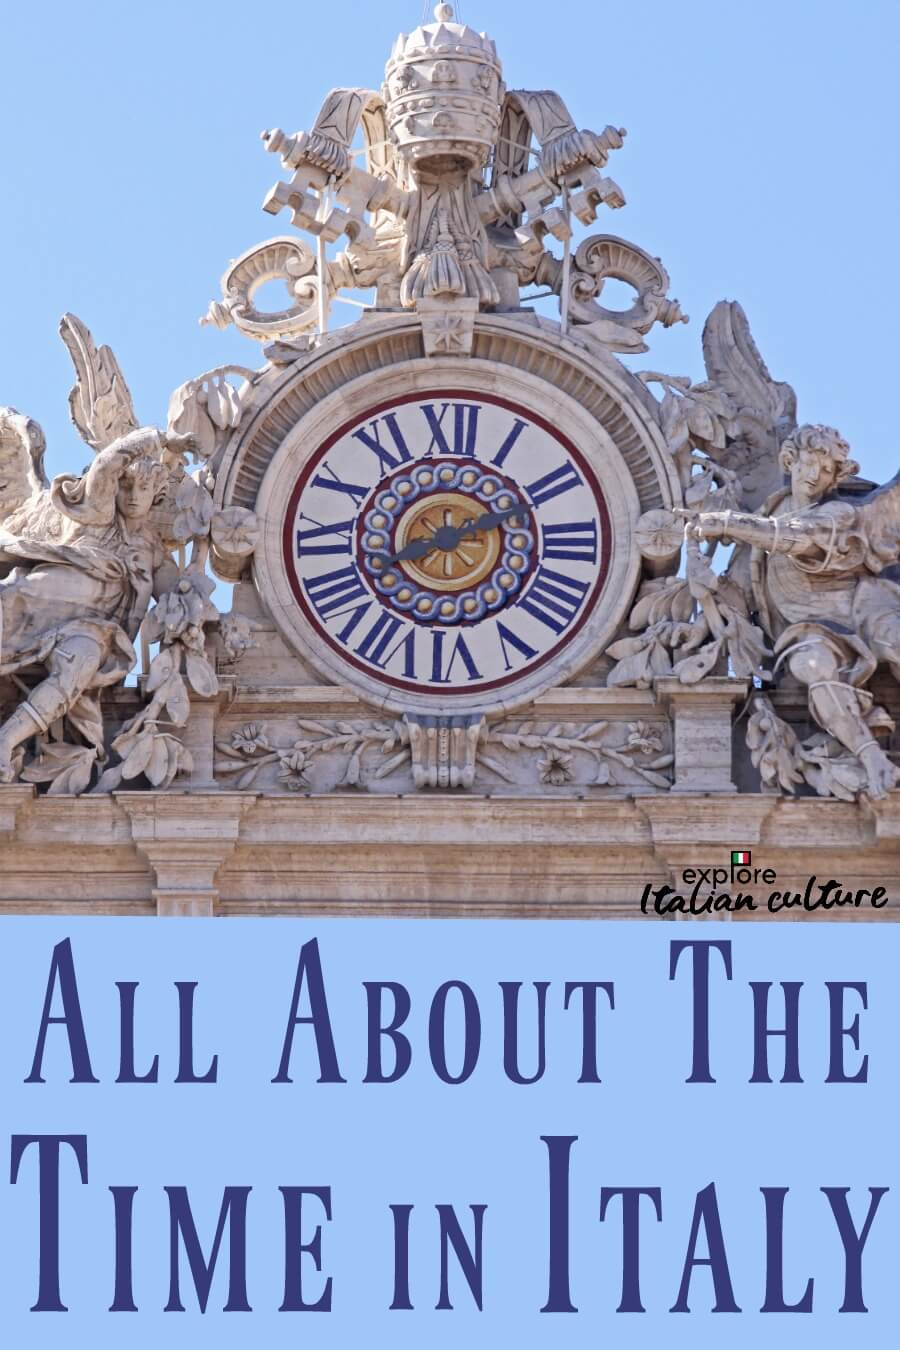 All you need to know about the time in Italy - pin for later.